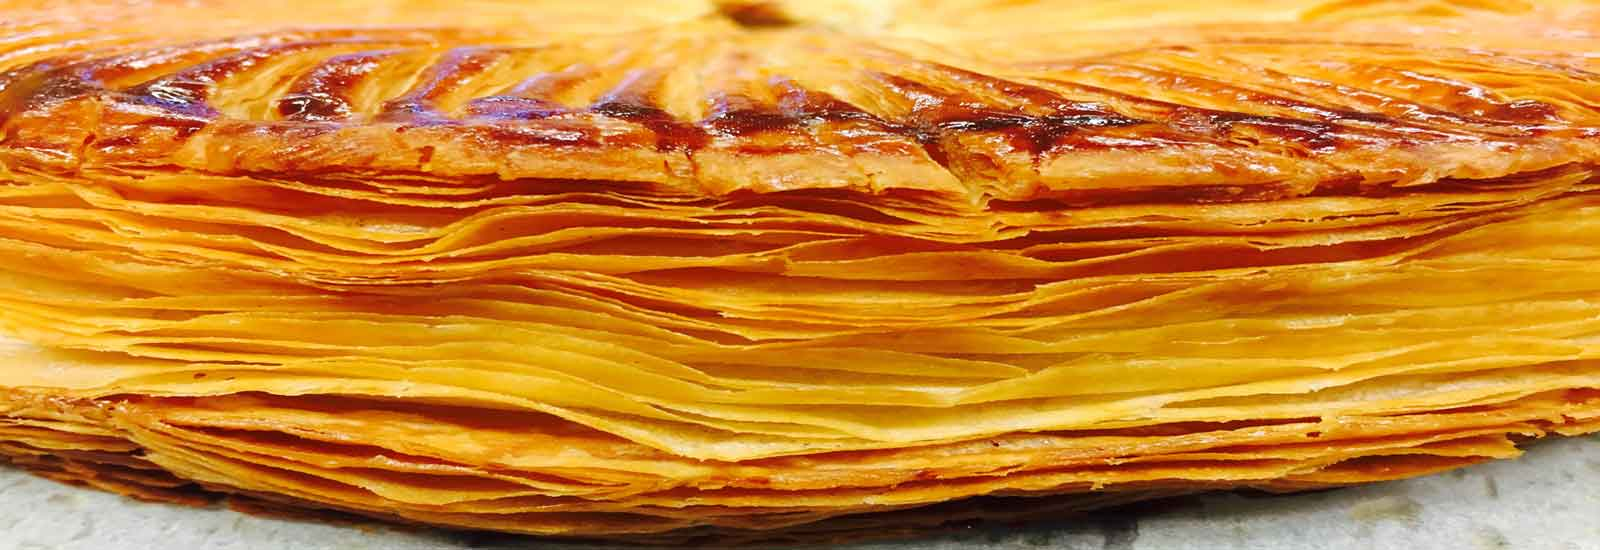 Learn to make the perfect pastry